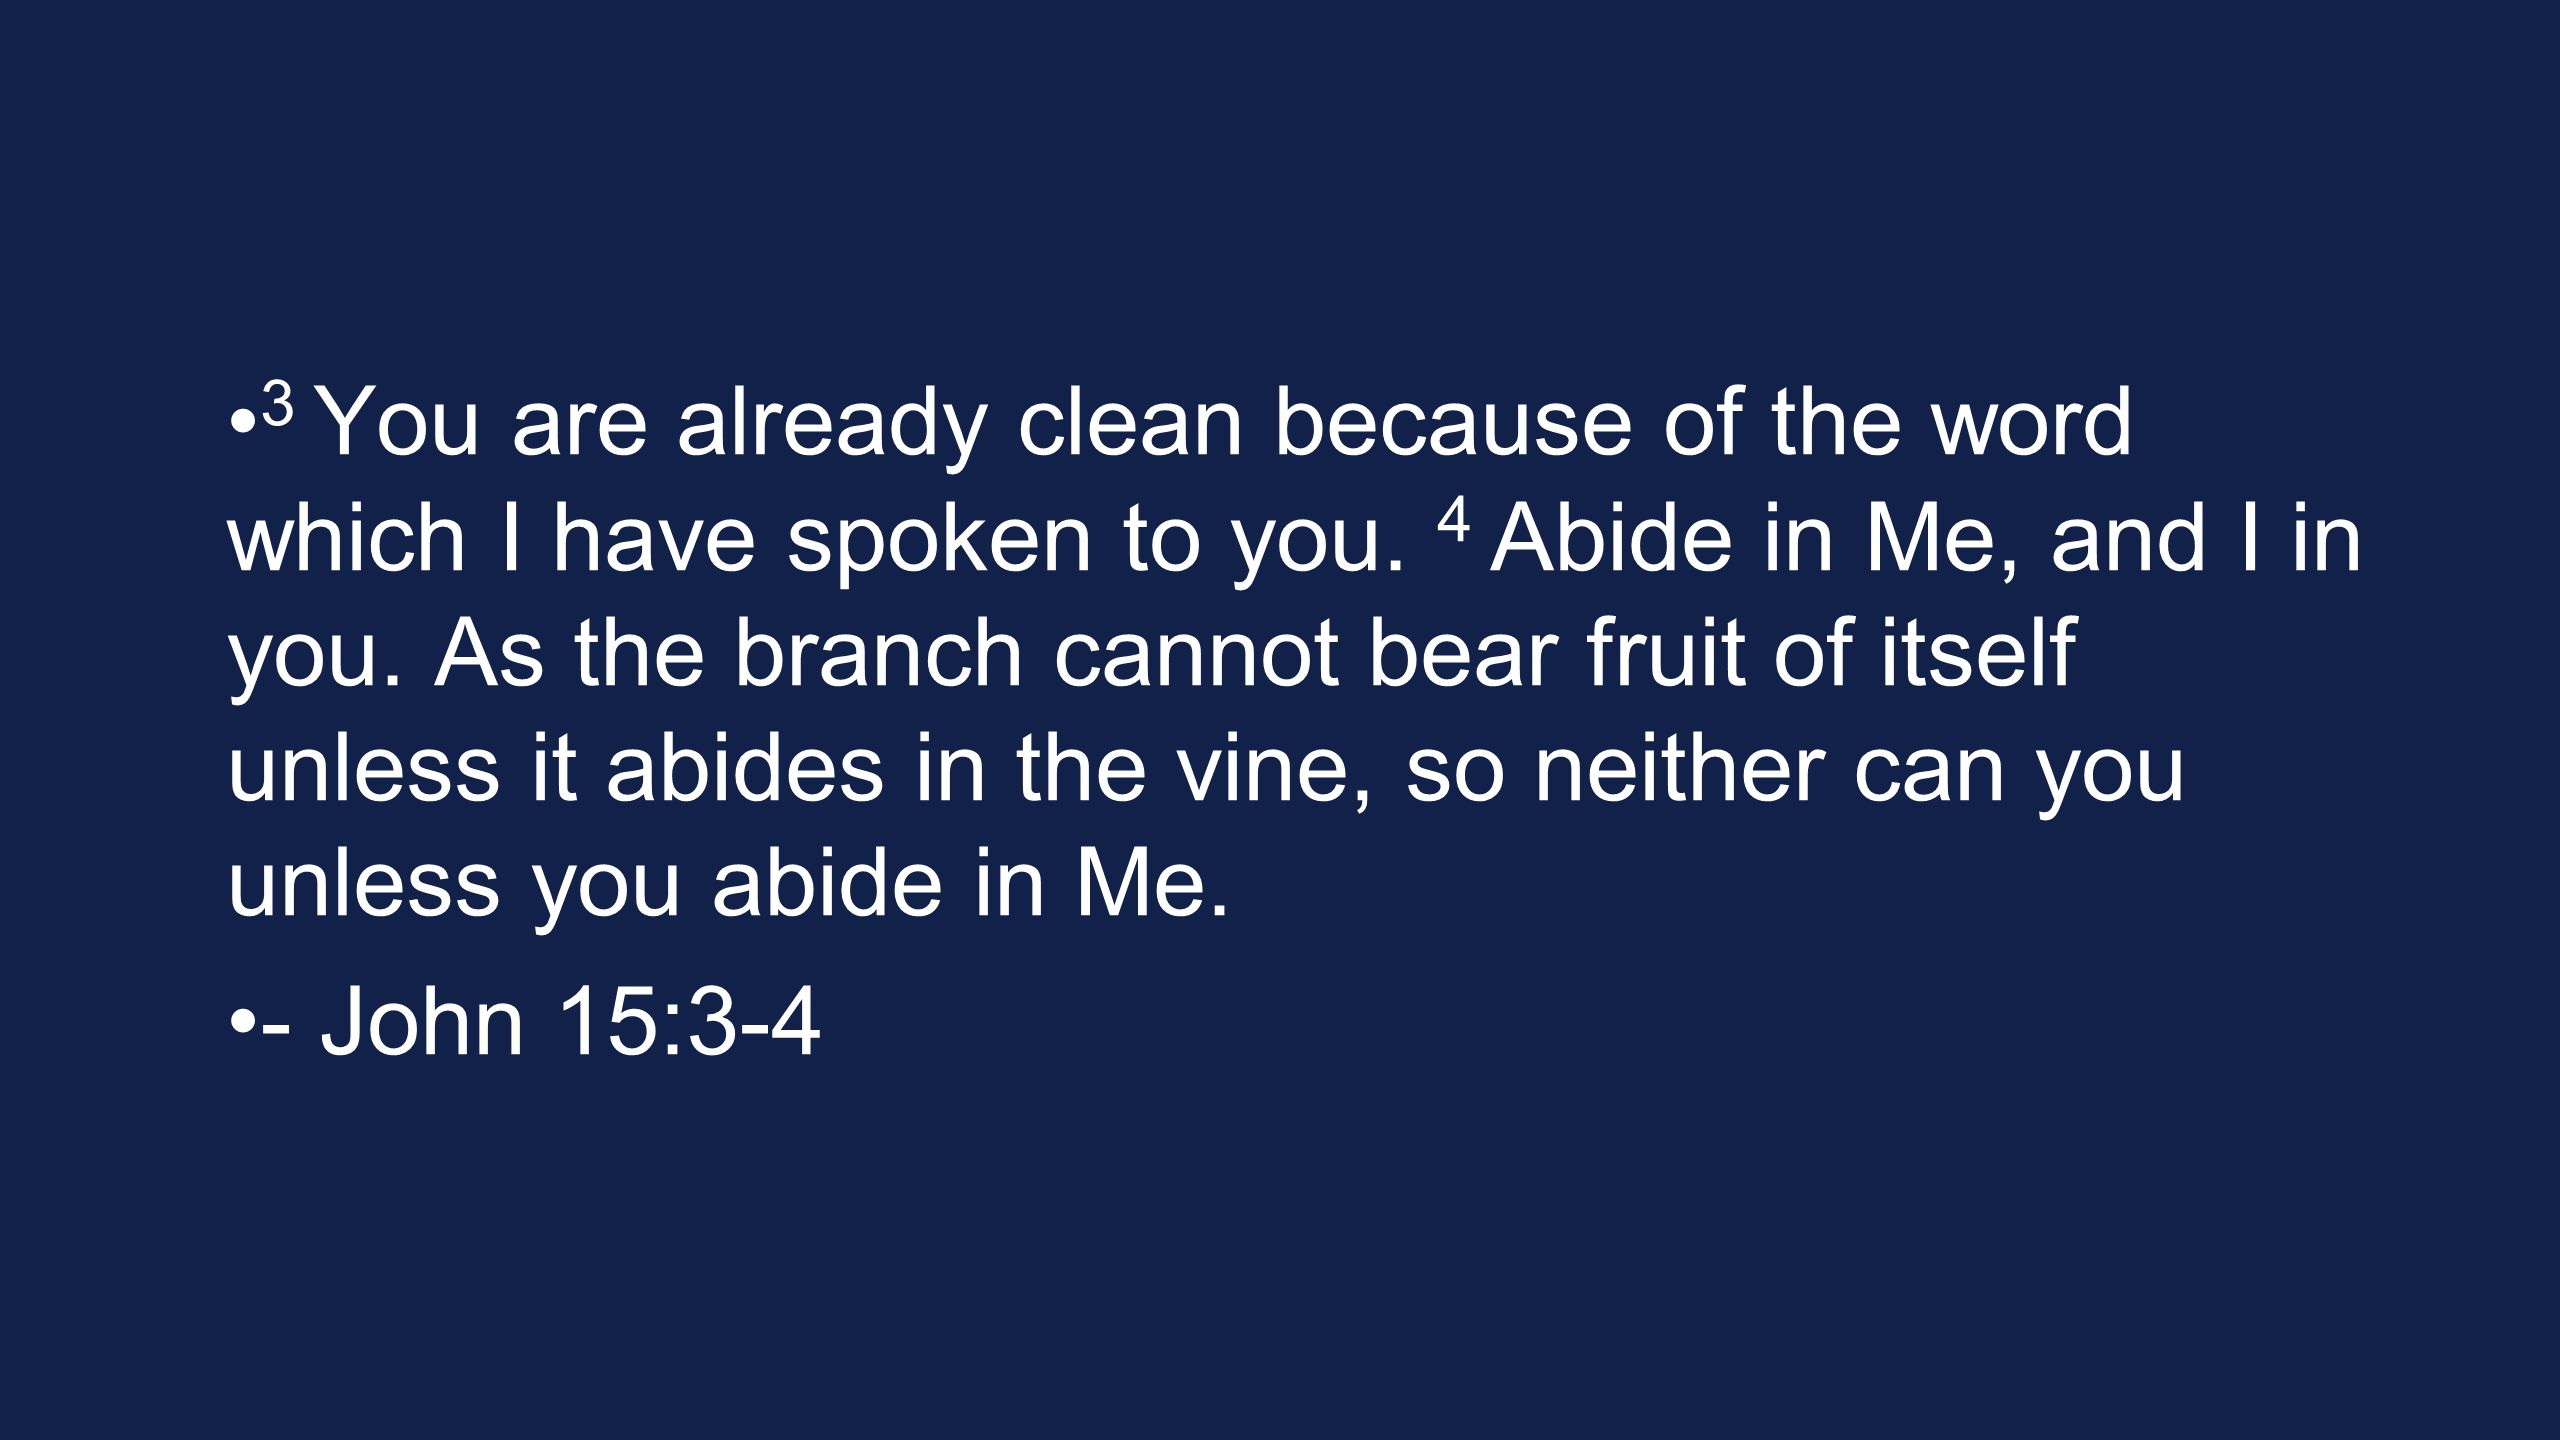 5 I am the vine, you are the branches; he who abides in Me and I in him, he bears much fruit, for apart from Me you can do nothing.